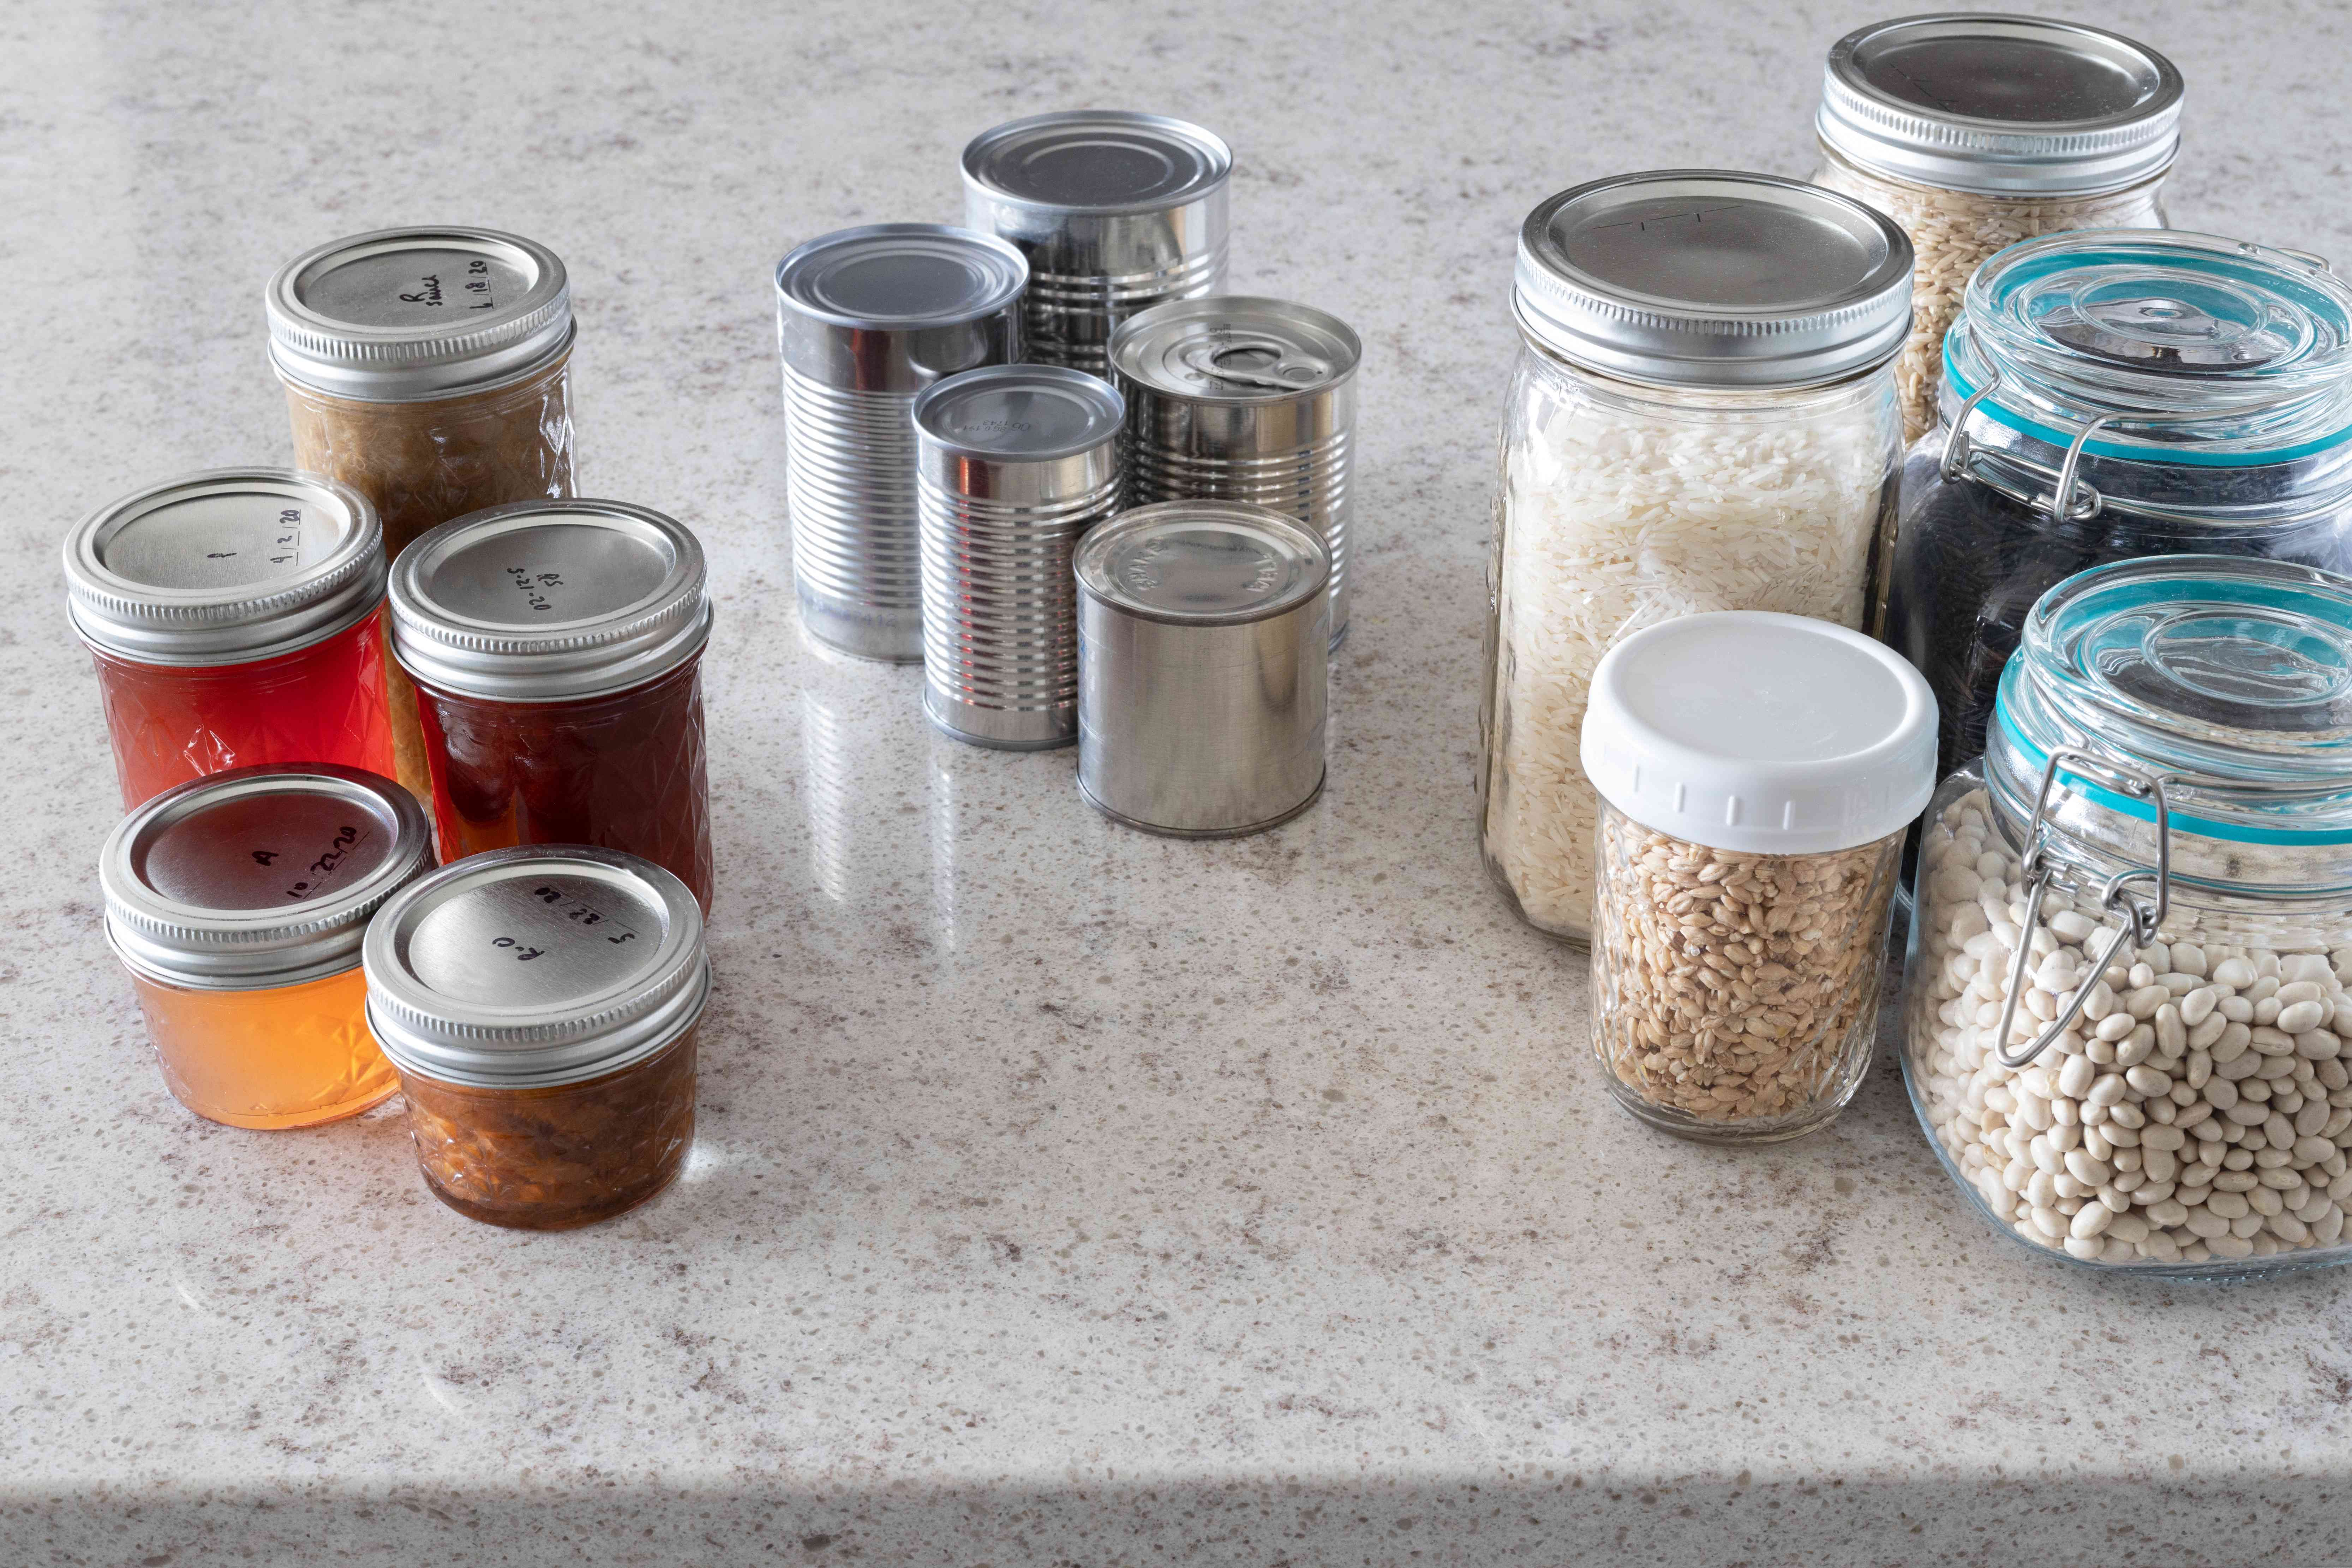 Kitchen pantry items separated into sections on marbled countertop